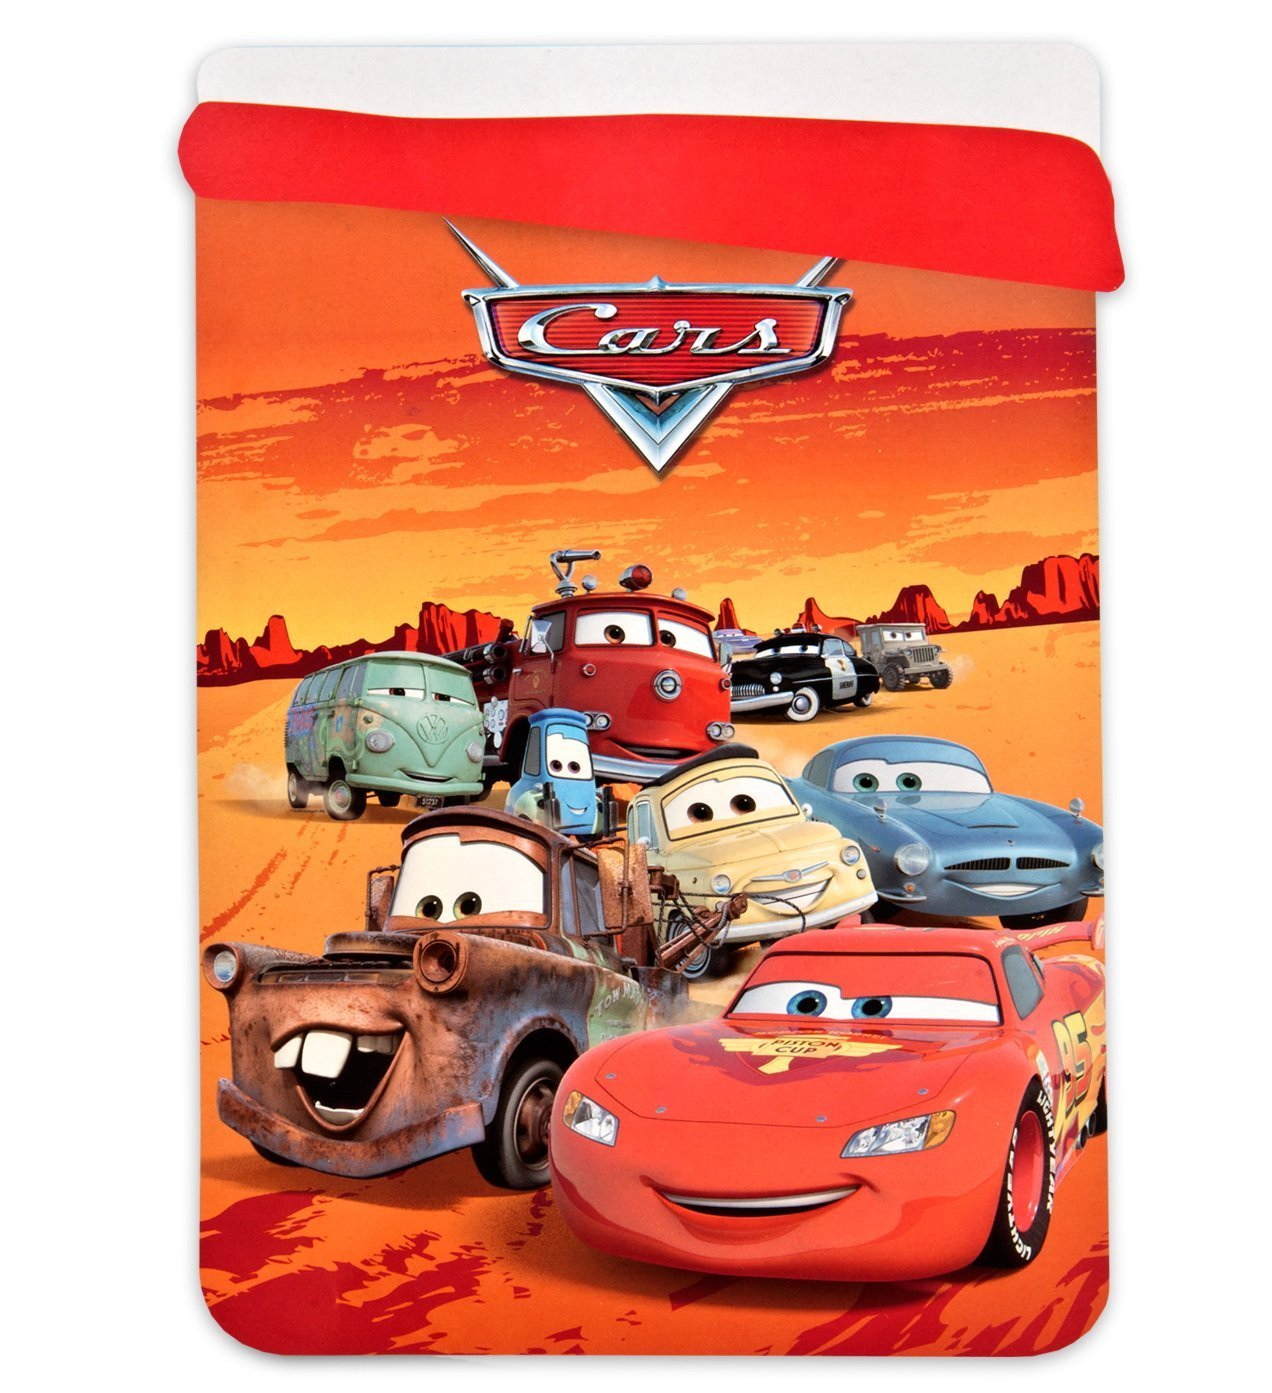 Jerry Fabrics Disney Cars Kids Bed Quilts Extra-Warm Children's Duvet Covers, Red, 180 x 260 cm JERRY FABRICS s.r.o. 225778